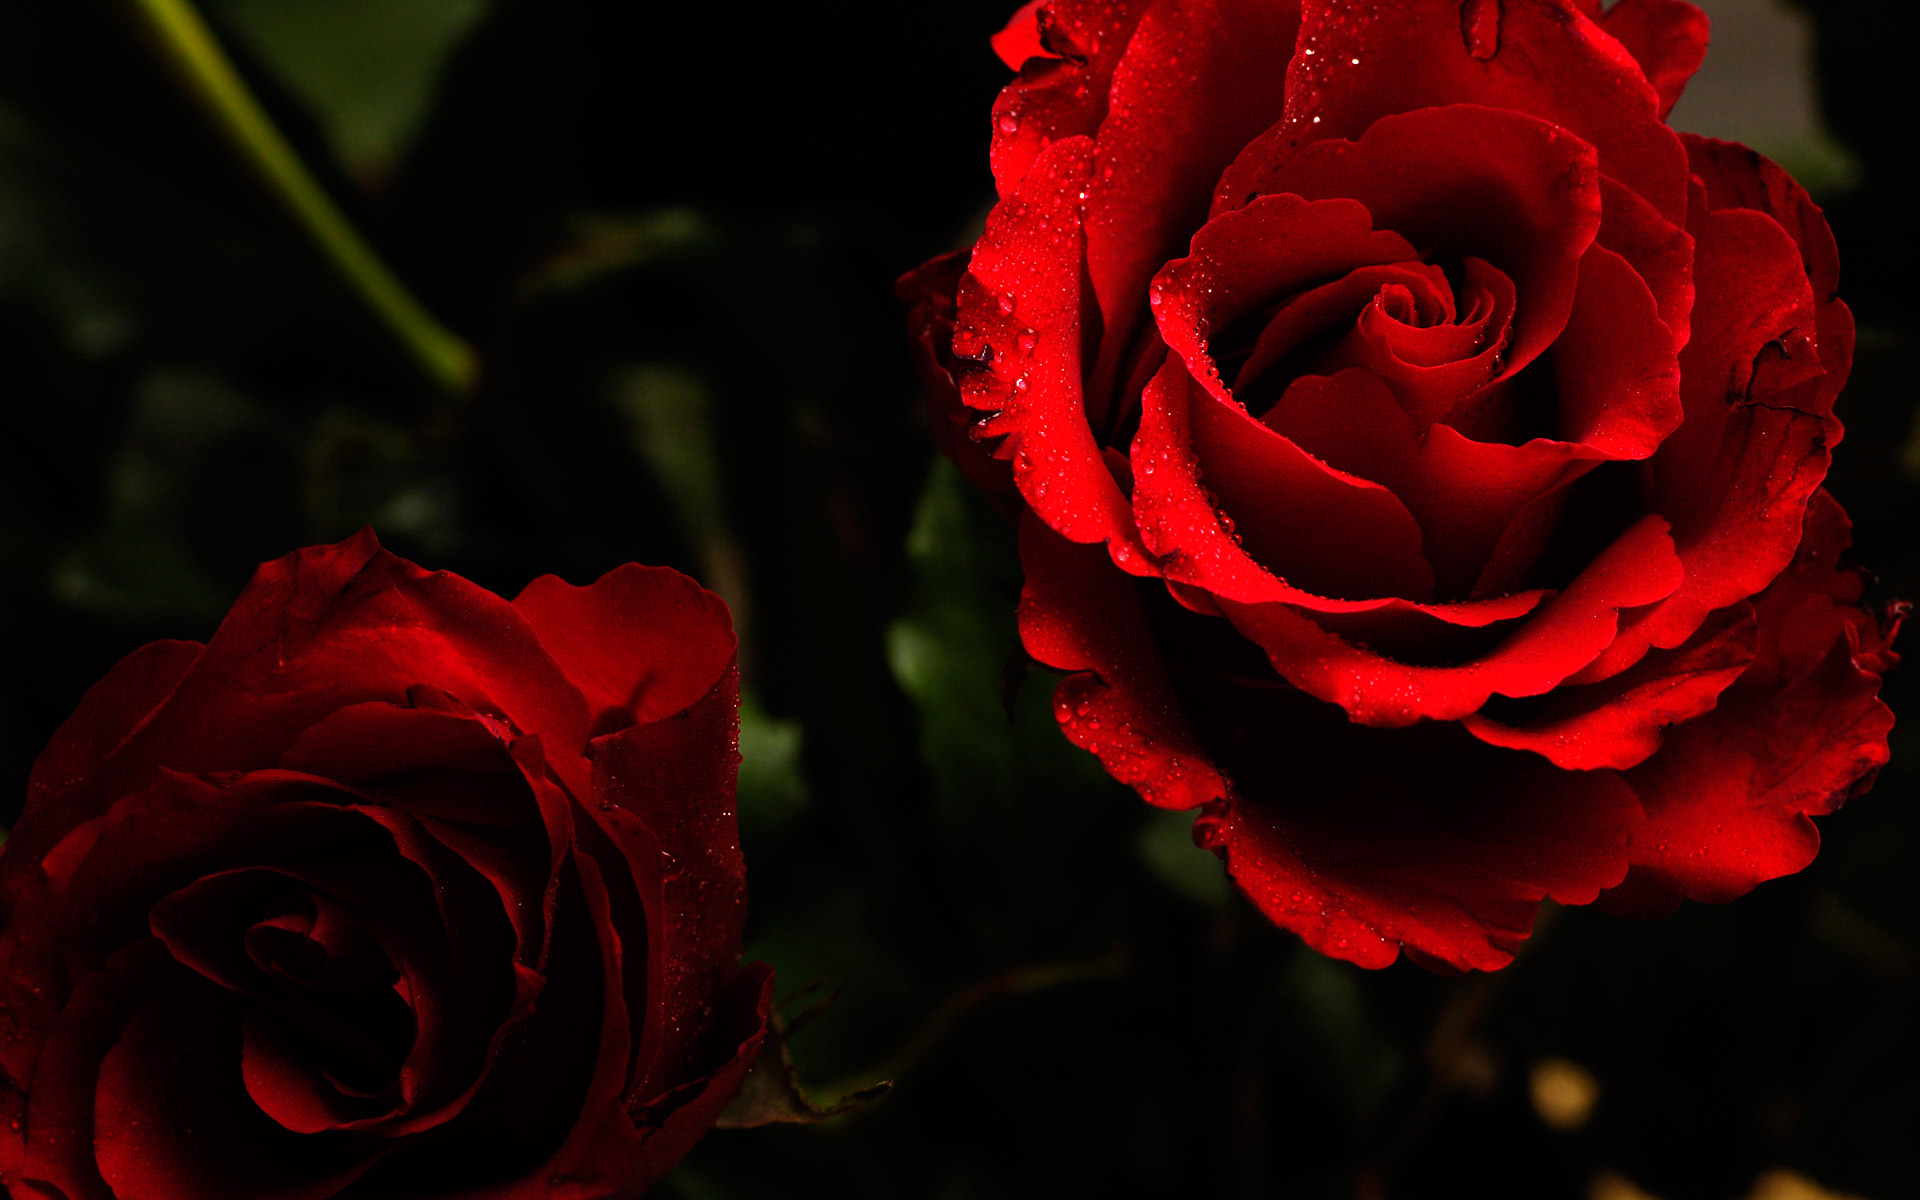 Image Wet Roses Wallpapers And Stock Photos